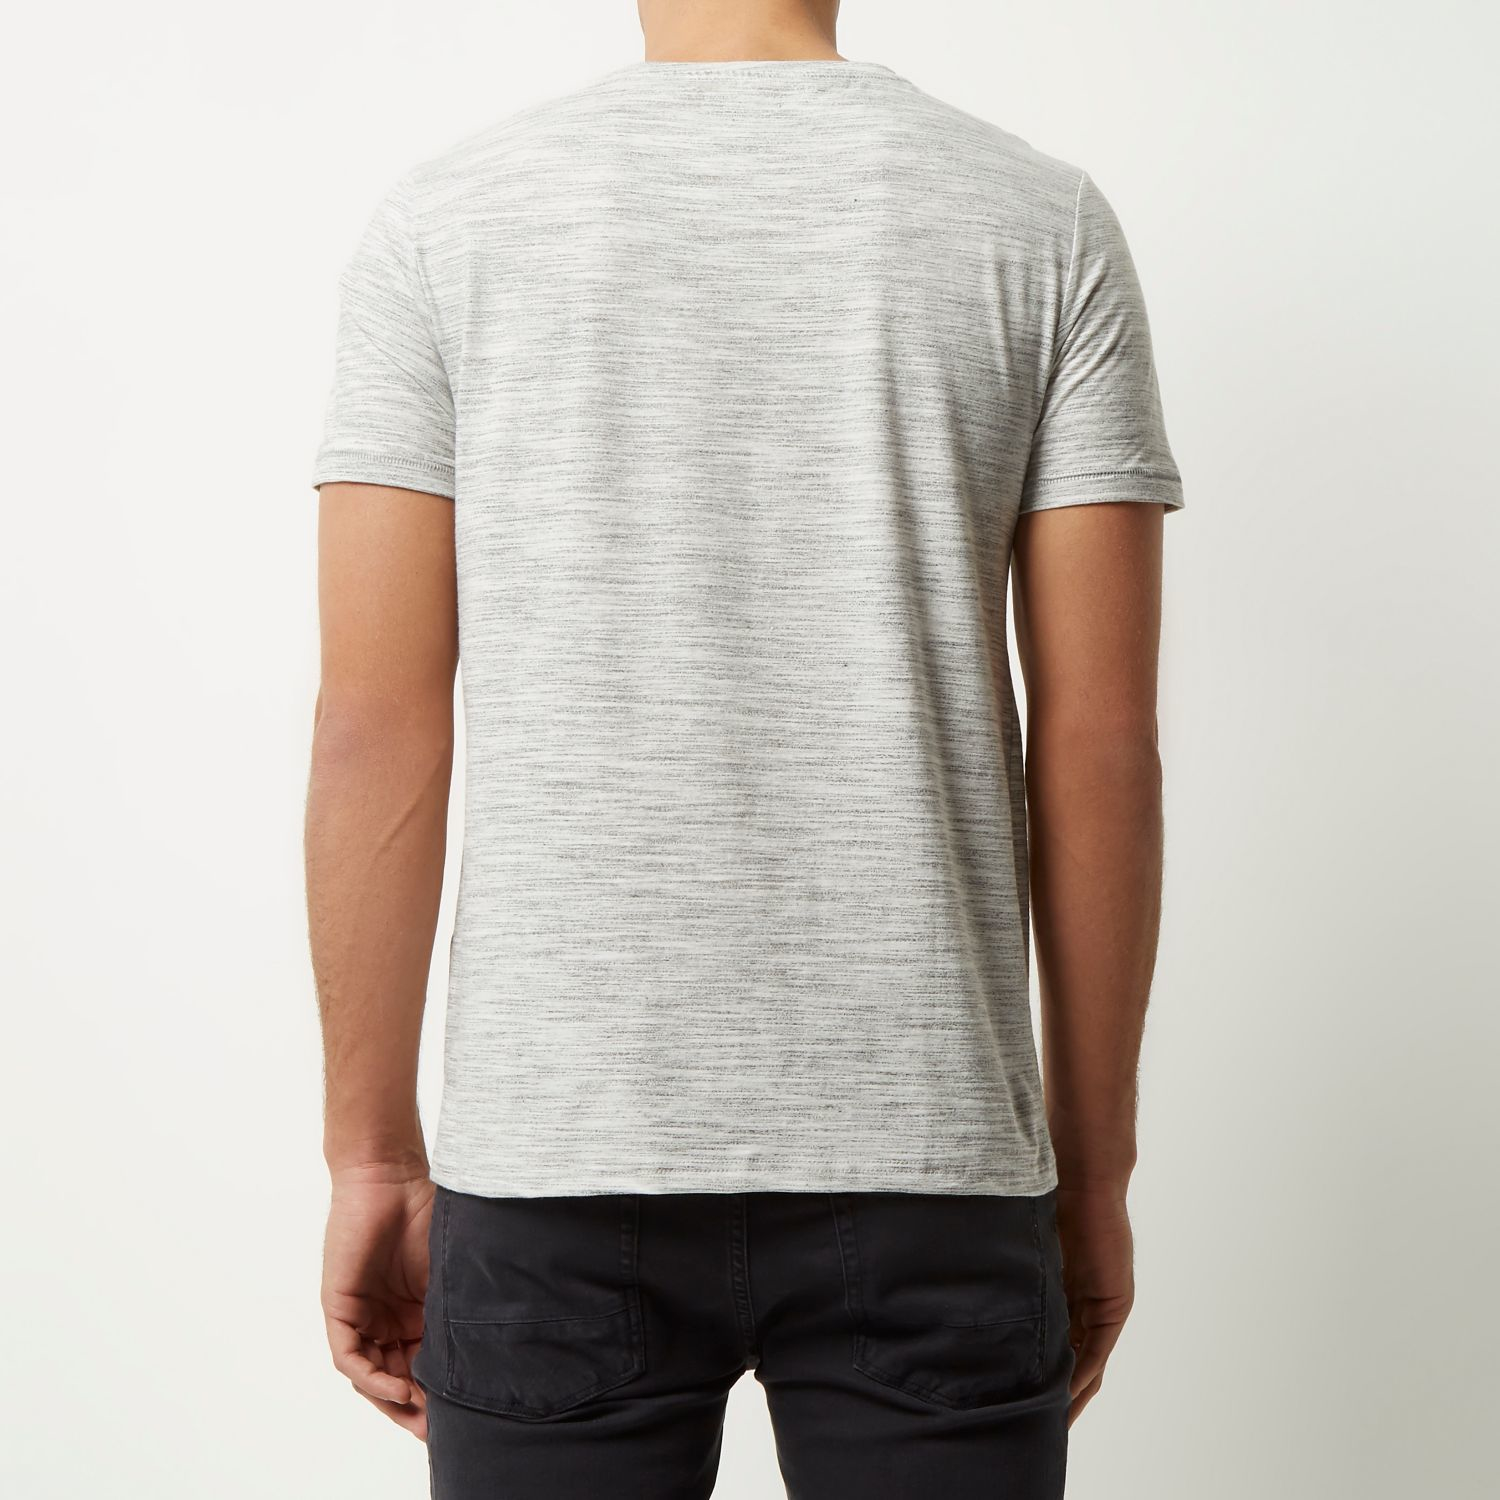 River island grey marl t shirt in gray for men lyst for Grey marl t shirt